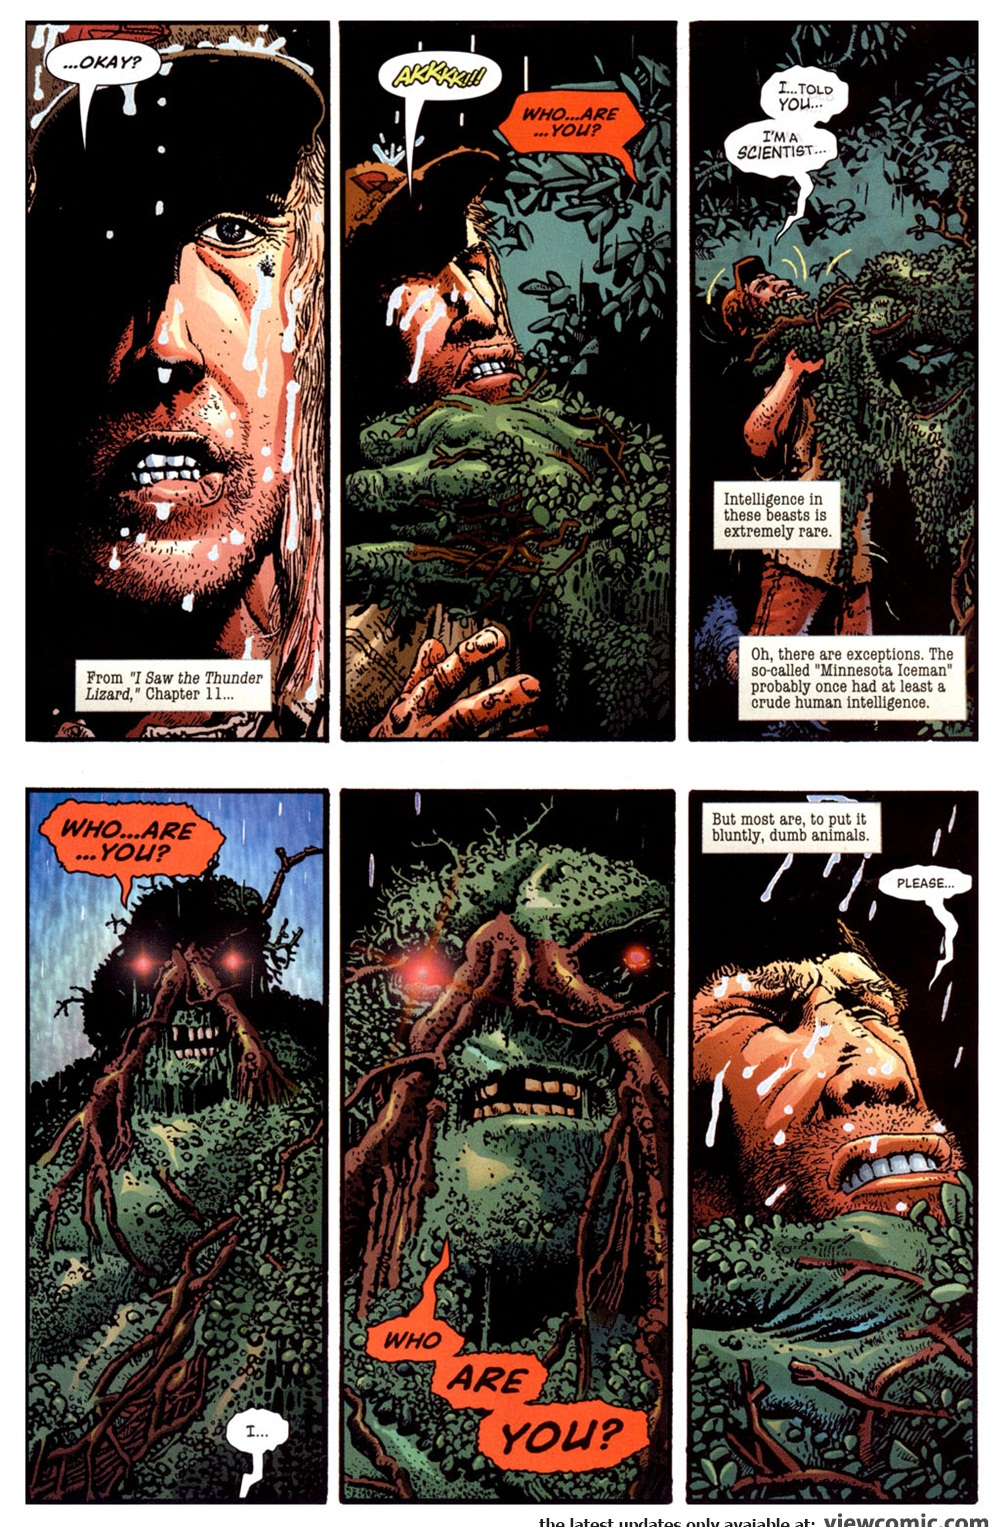 Swamp Thing v4 007 | Vietcomic.net reading comics online for free